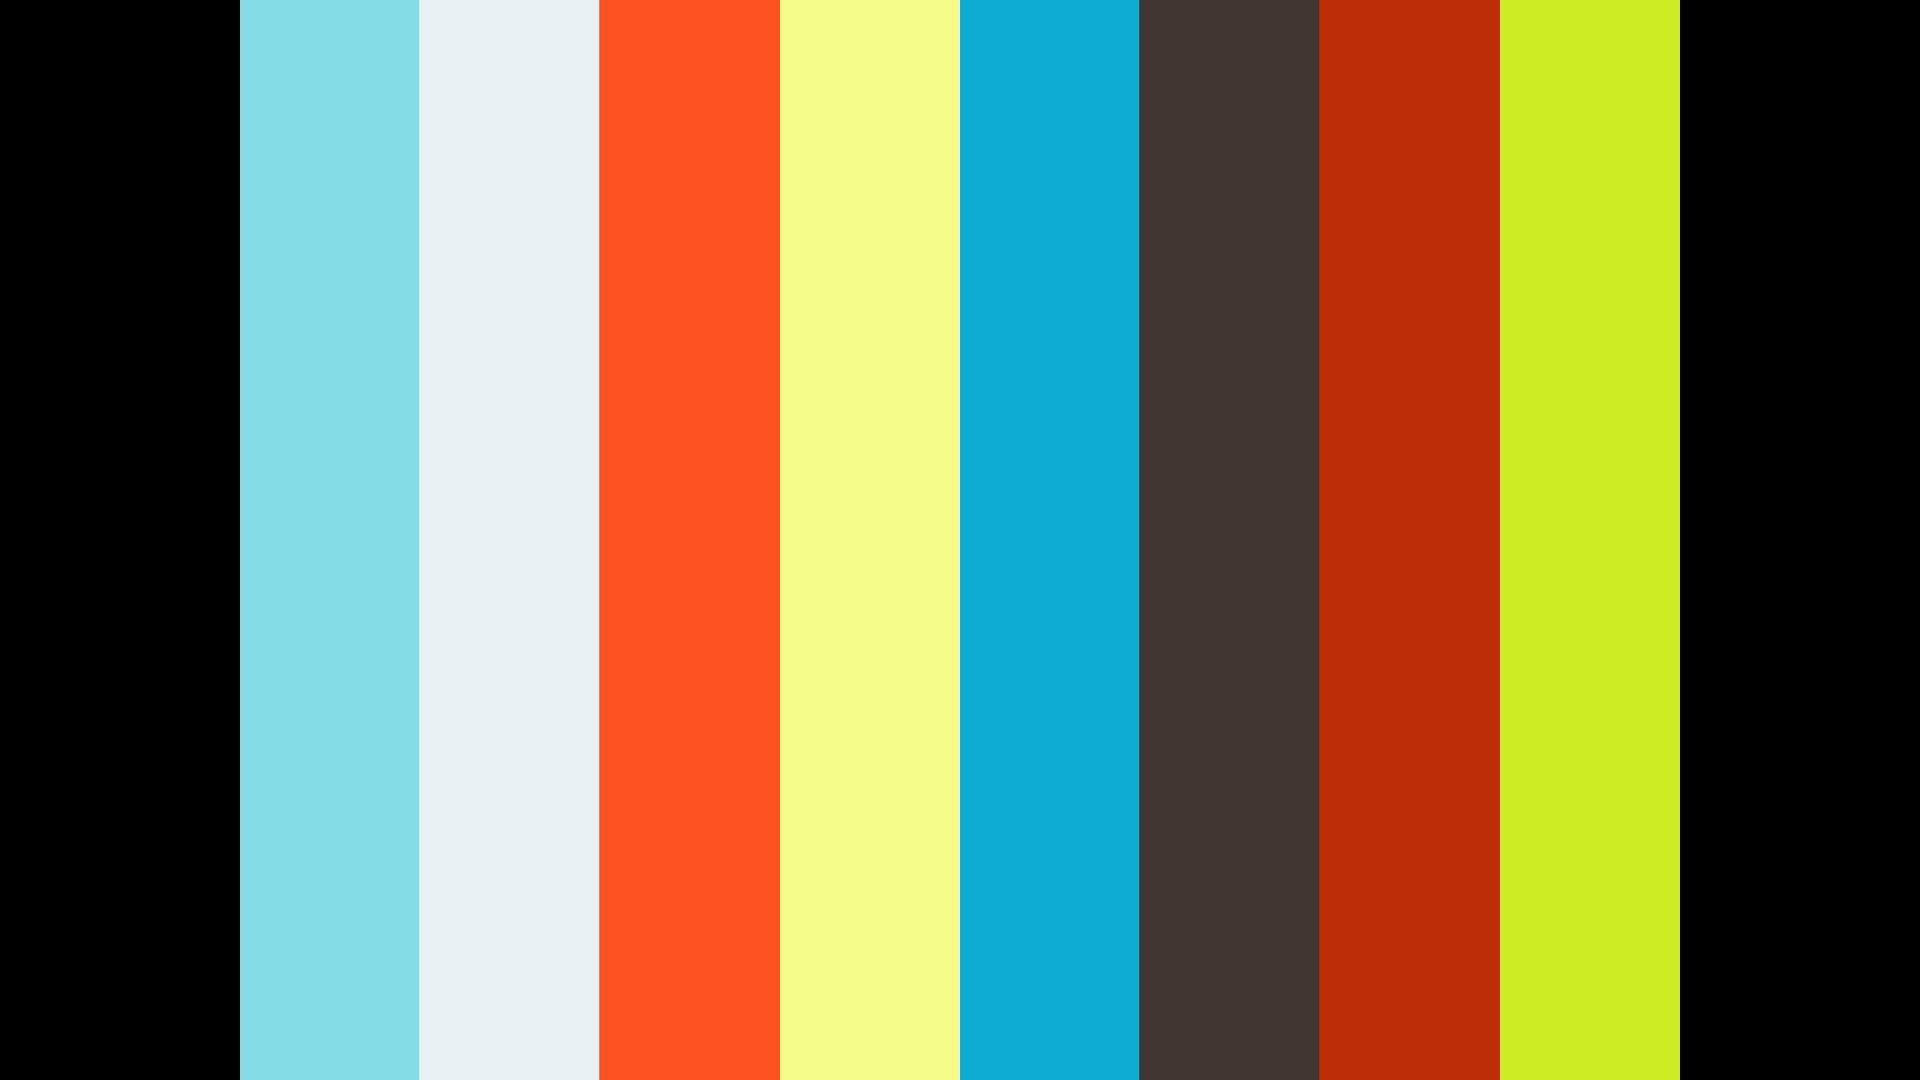 Joffrey West Los Angeles Intensive 2013 - Retraction of Unedited Words, Choreography by Mia Michaels - Joffrey Ballet School